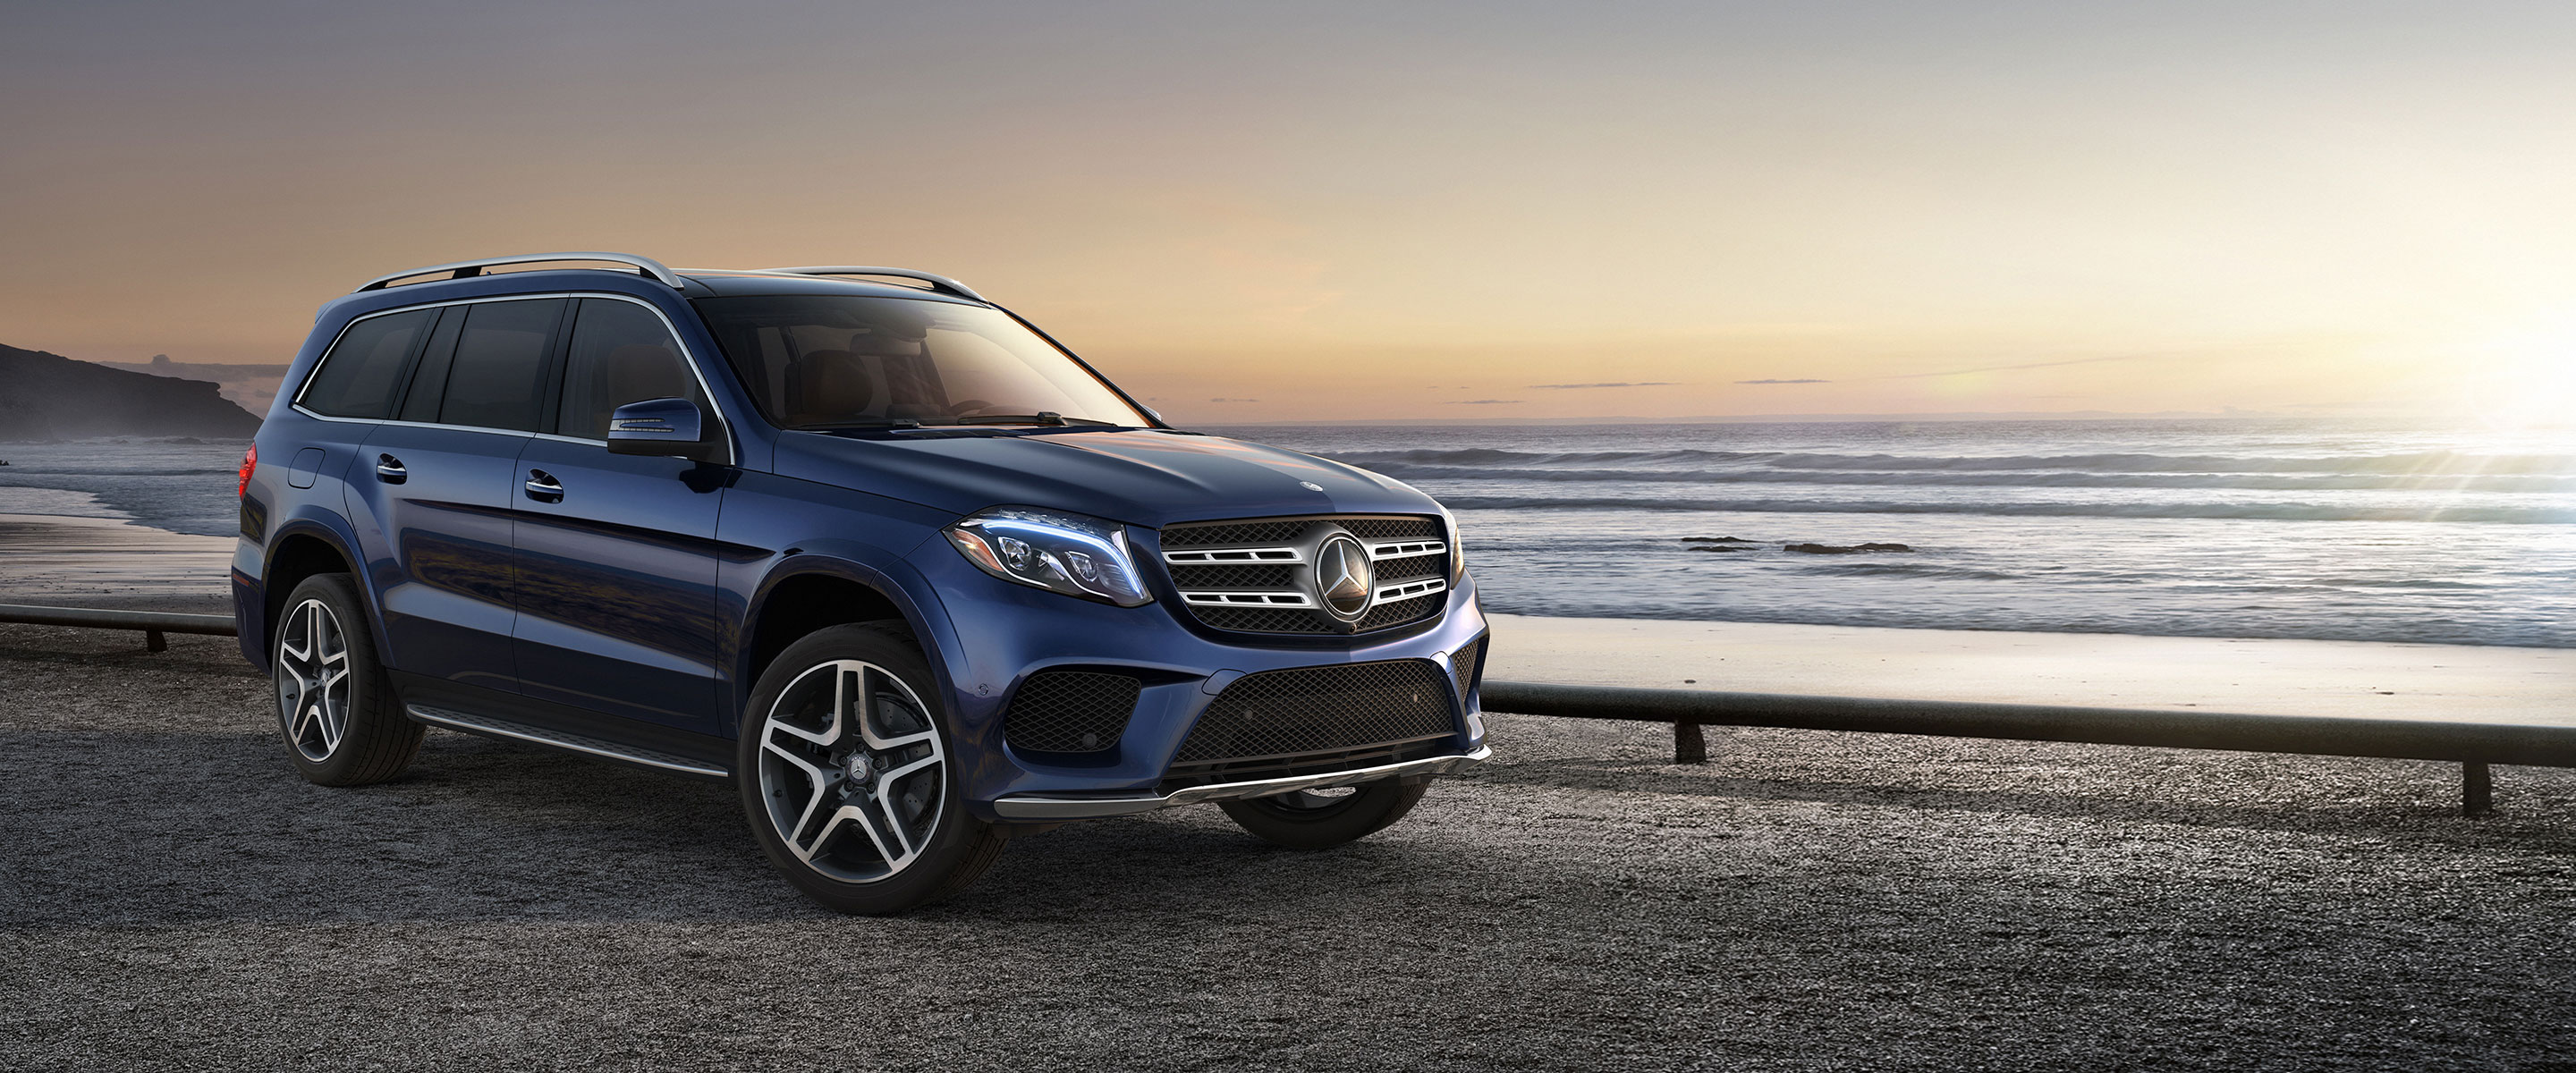 Mercedes benz gls price lease ann arbor mi for Mercedes benz dealers in michigan